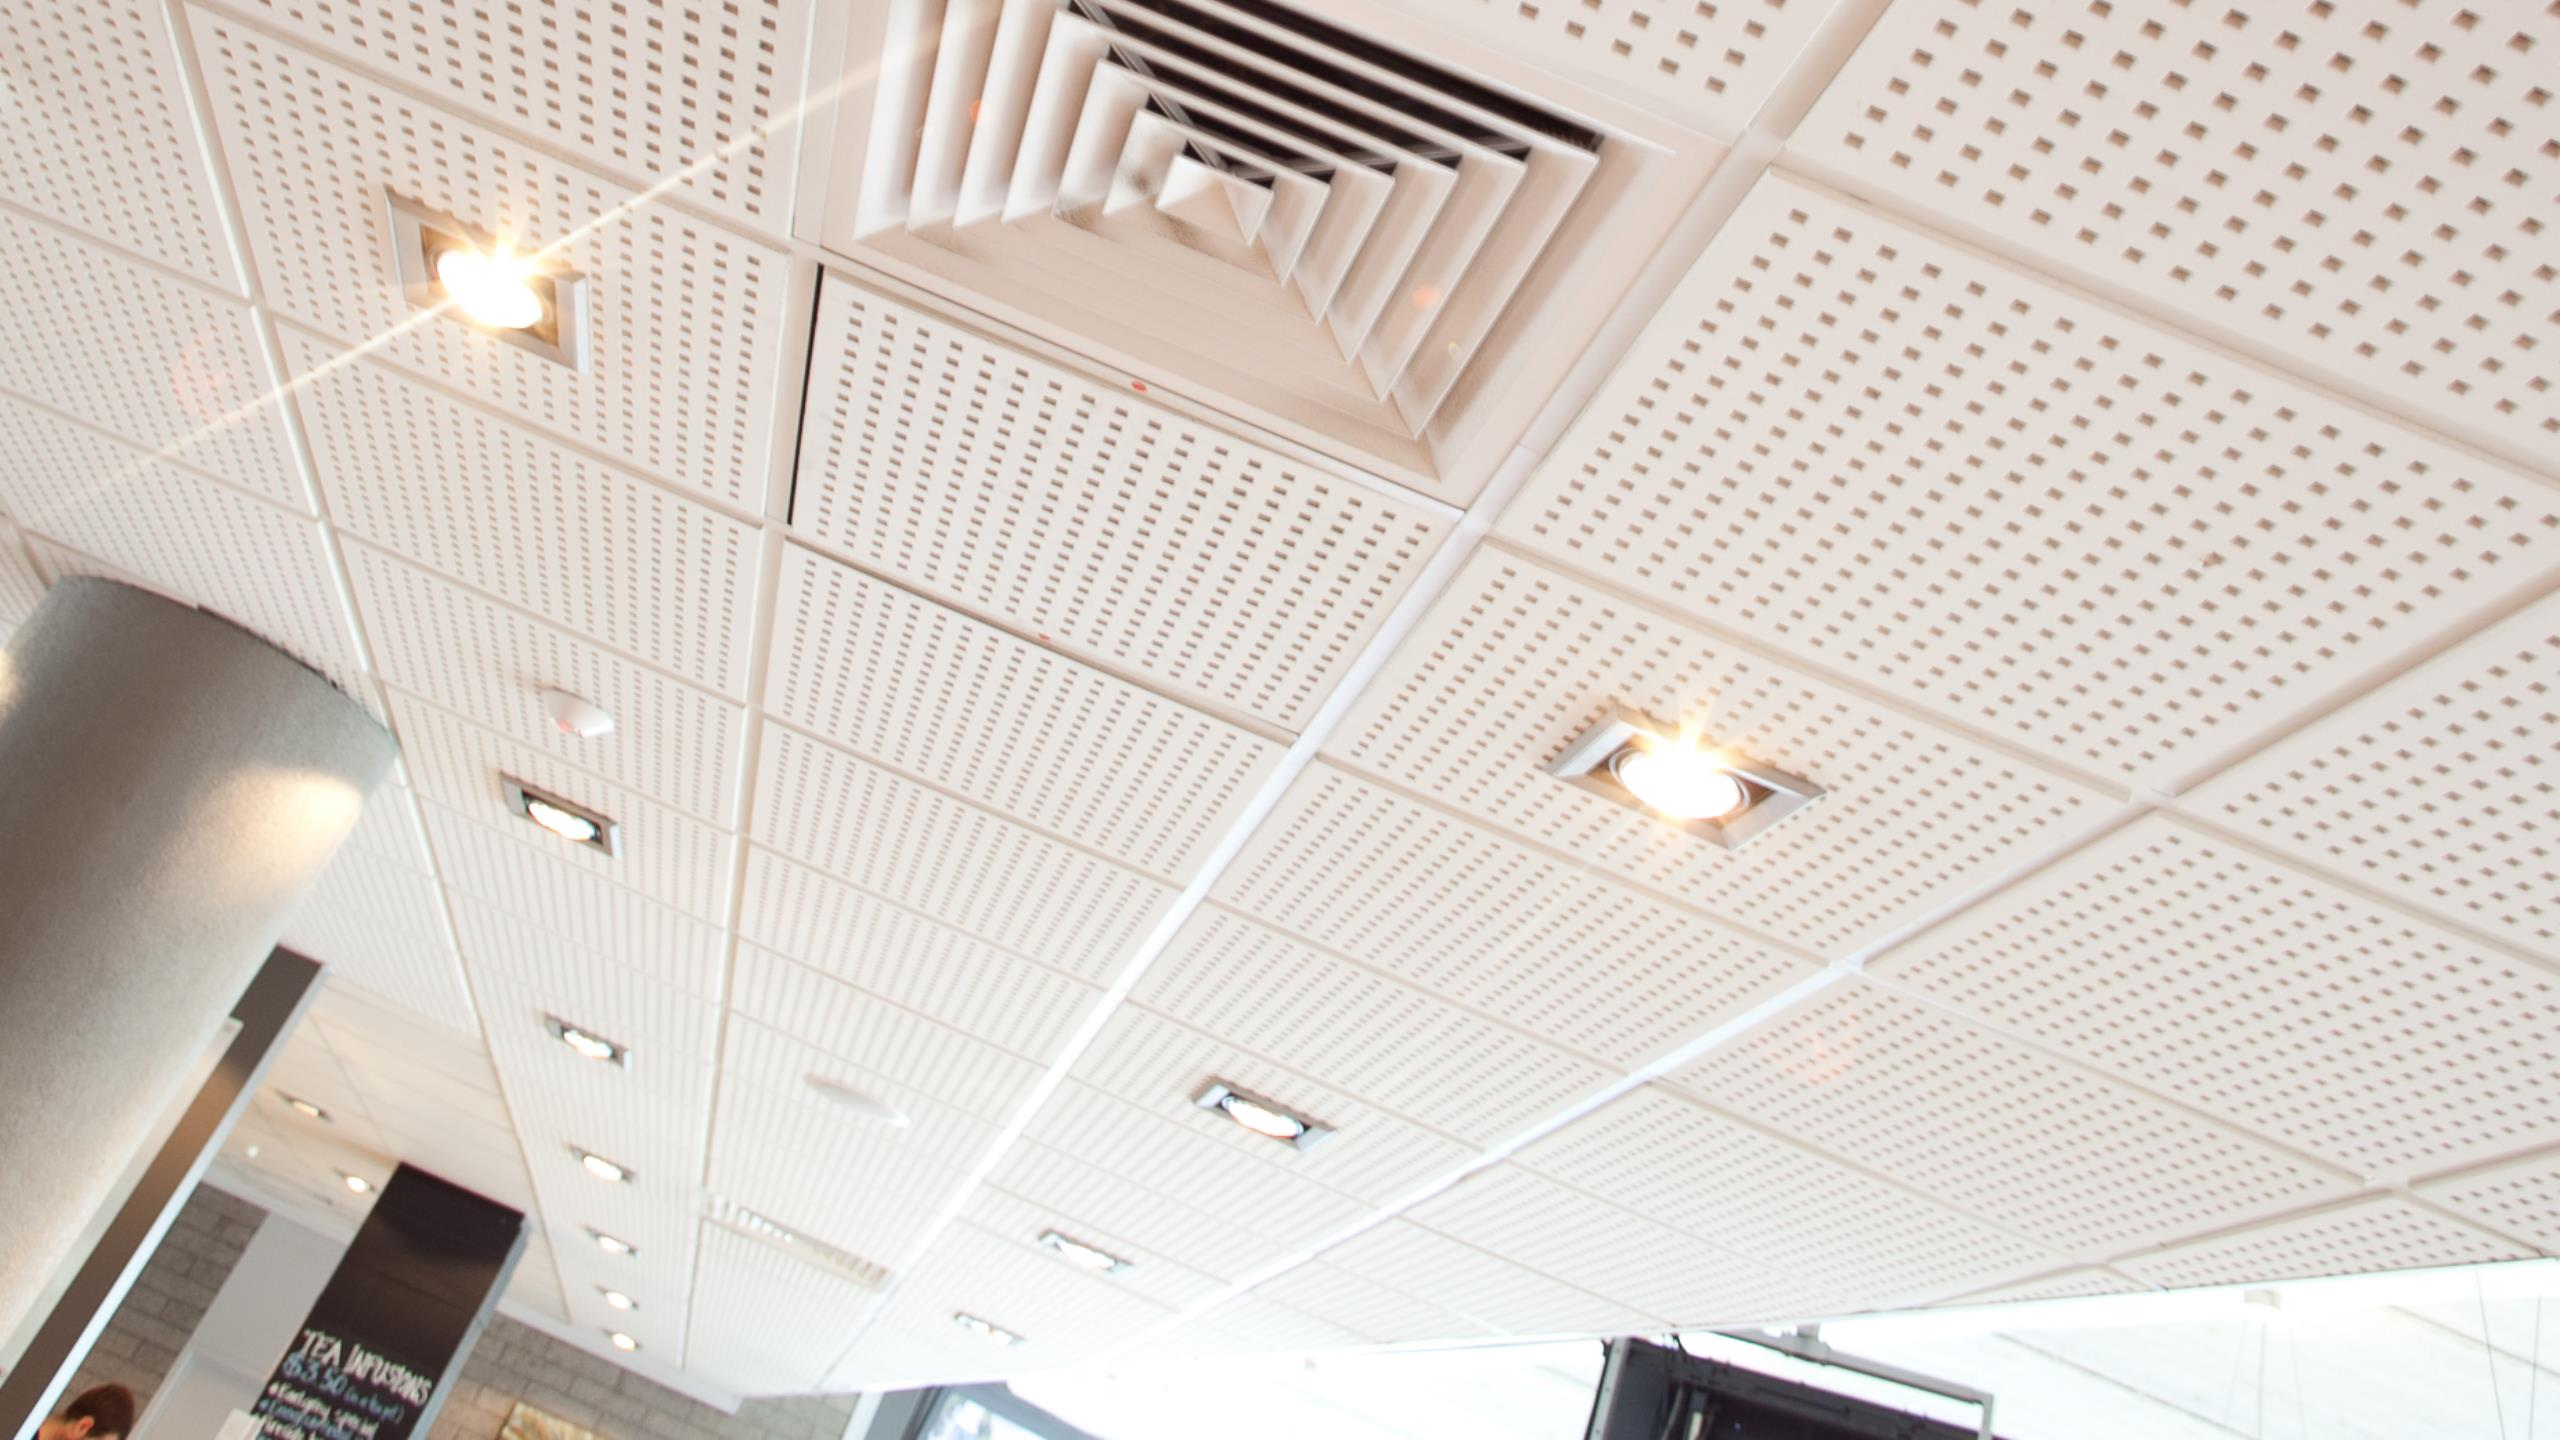 The Parenting Place - Belgravia Q1 perforated plasterboard